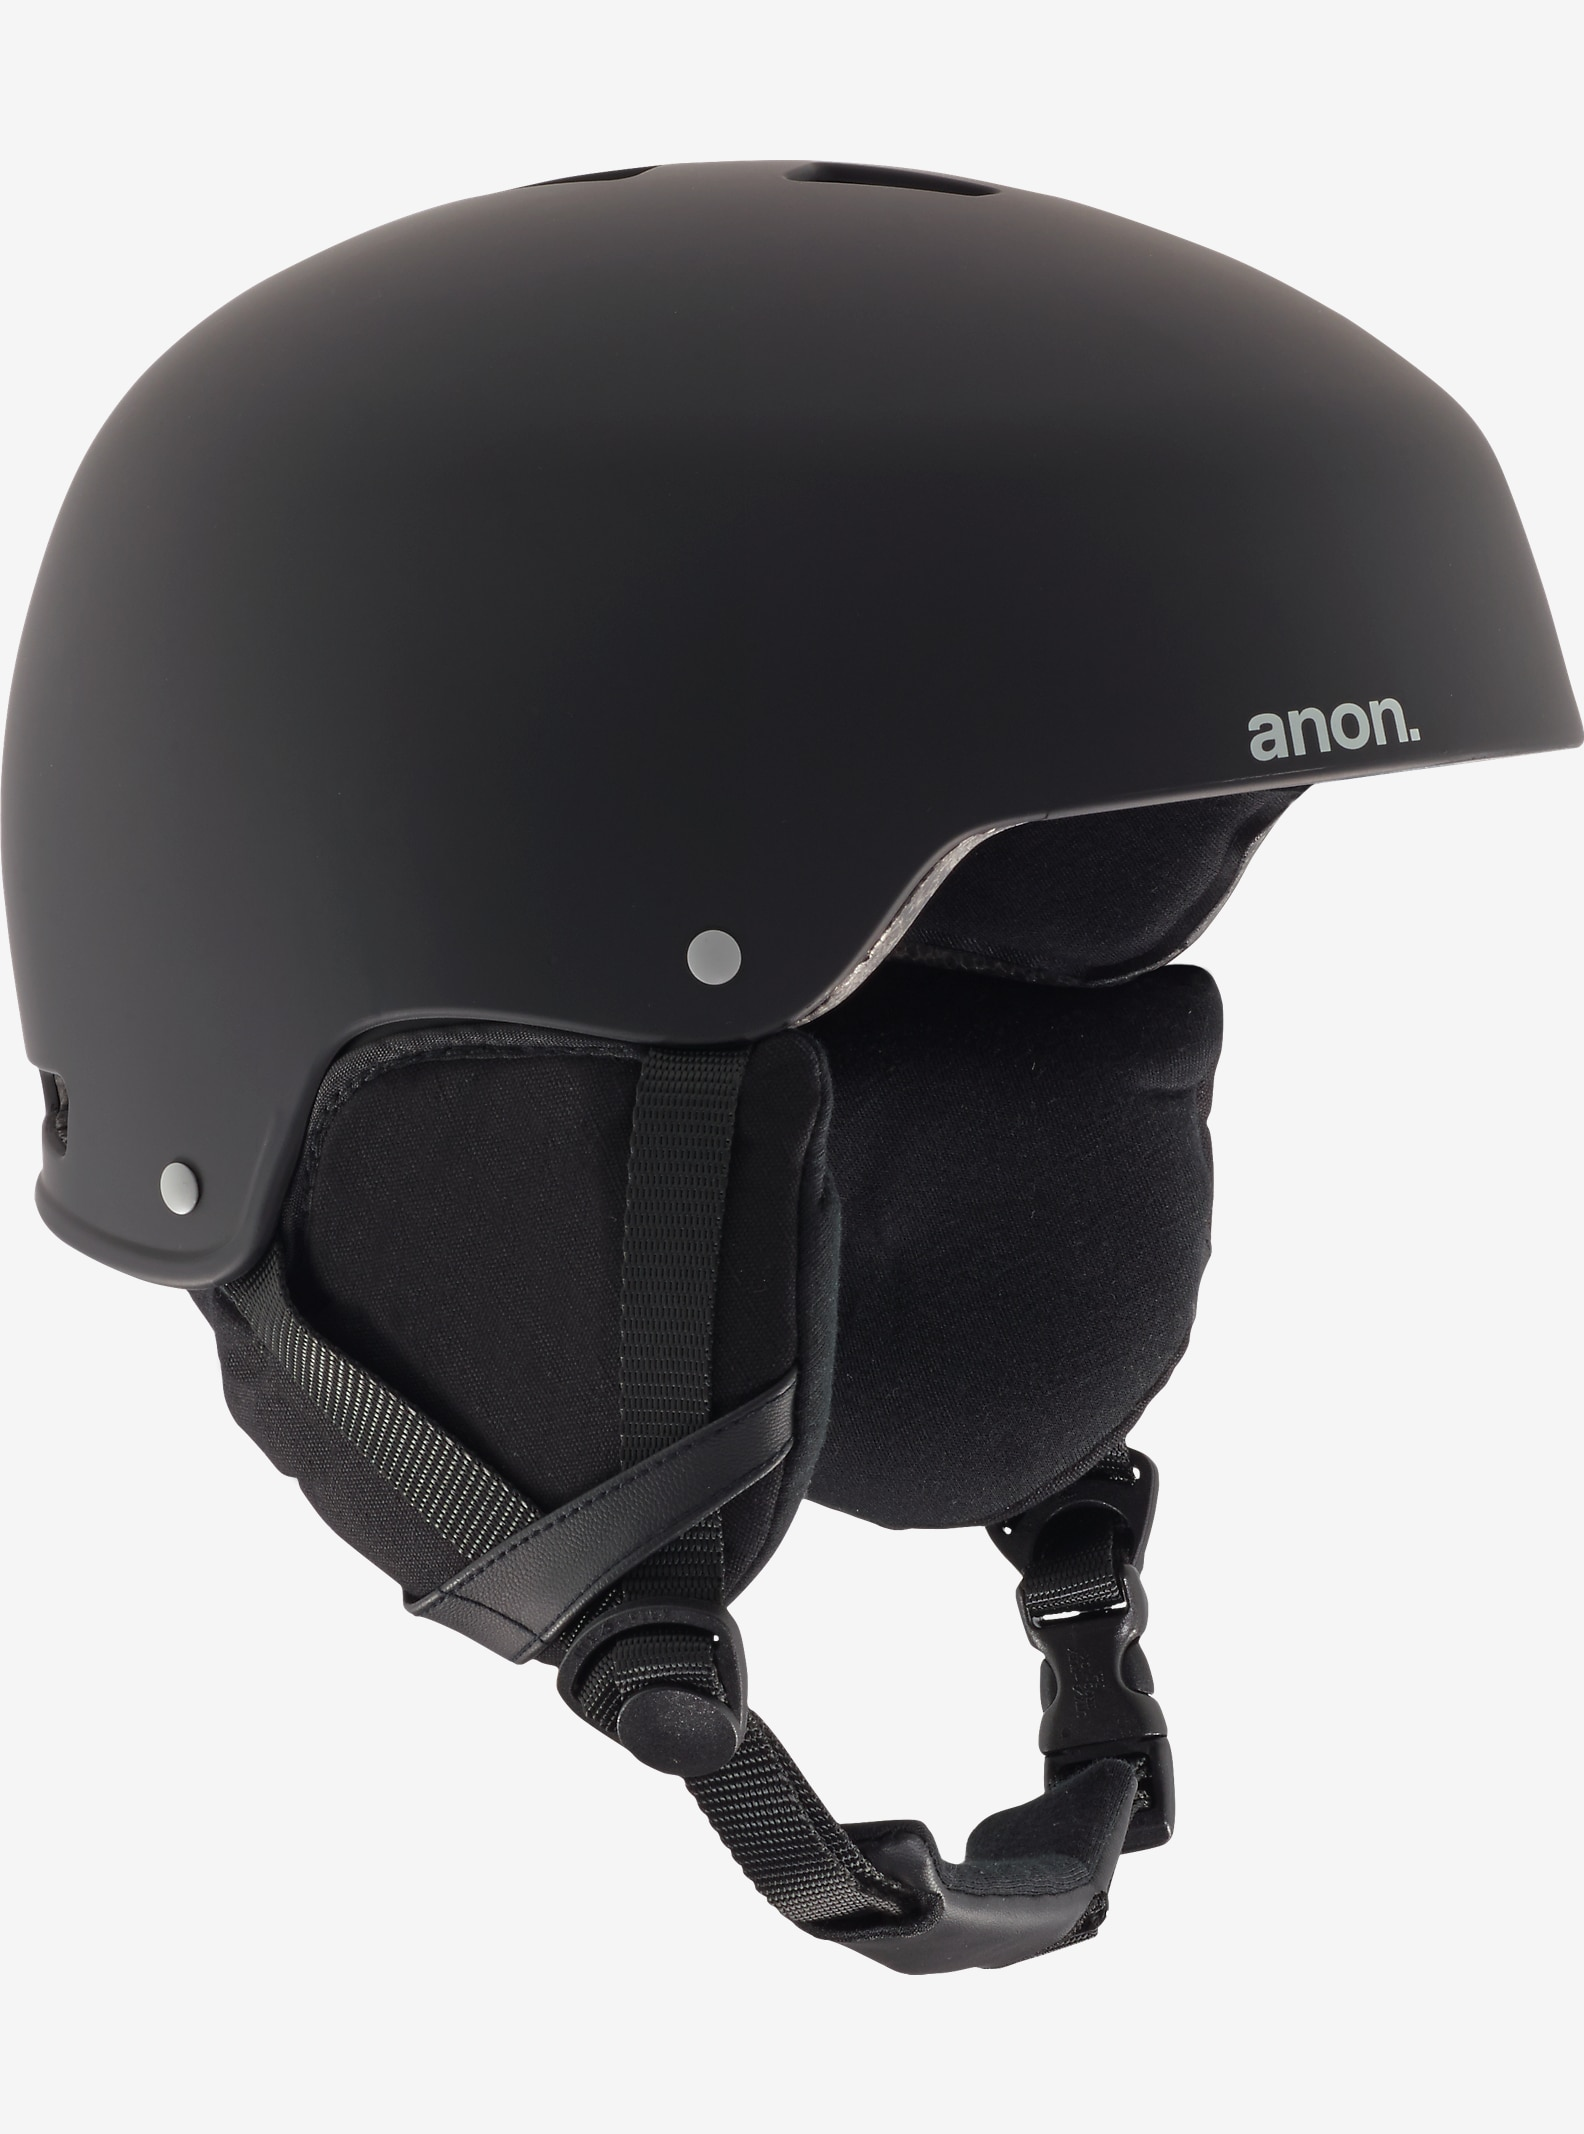 anon. Striker Helmet shown in Grunge Black